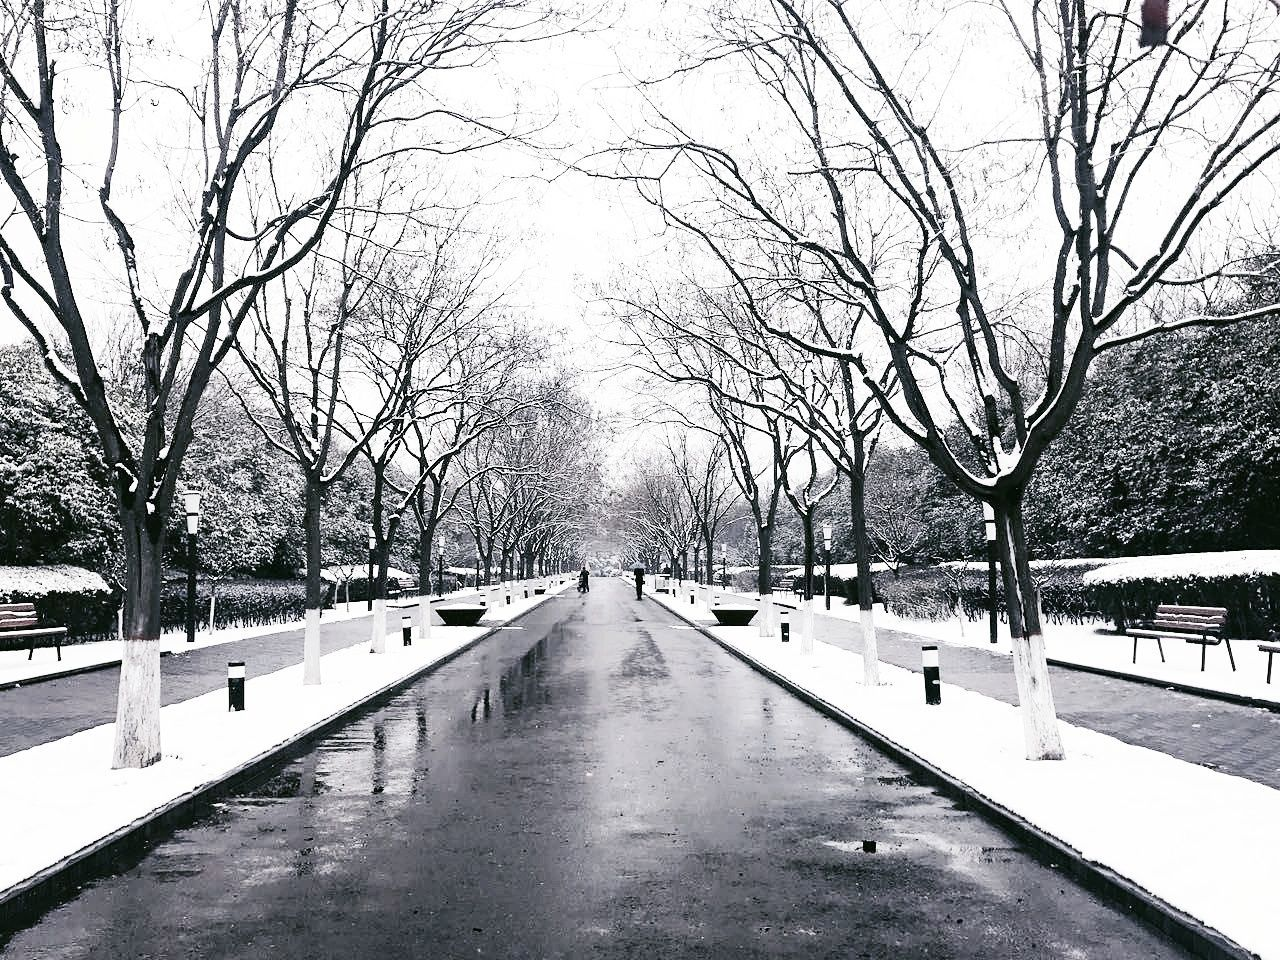 Cold Temperature Snow Winter Bare Tree Weather Nature Day Outdoors Beauty In Nature Fame Canon Trip Views Phoyography VSCO Skylight City Life Iphonography Architecture Photography